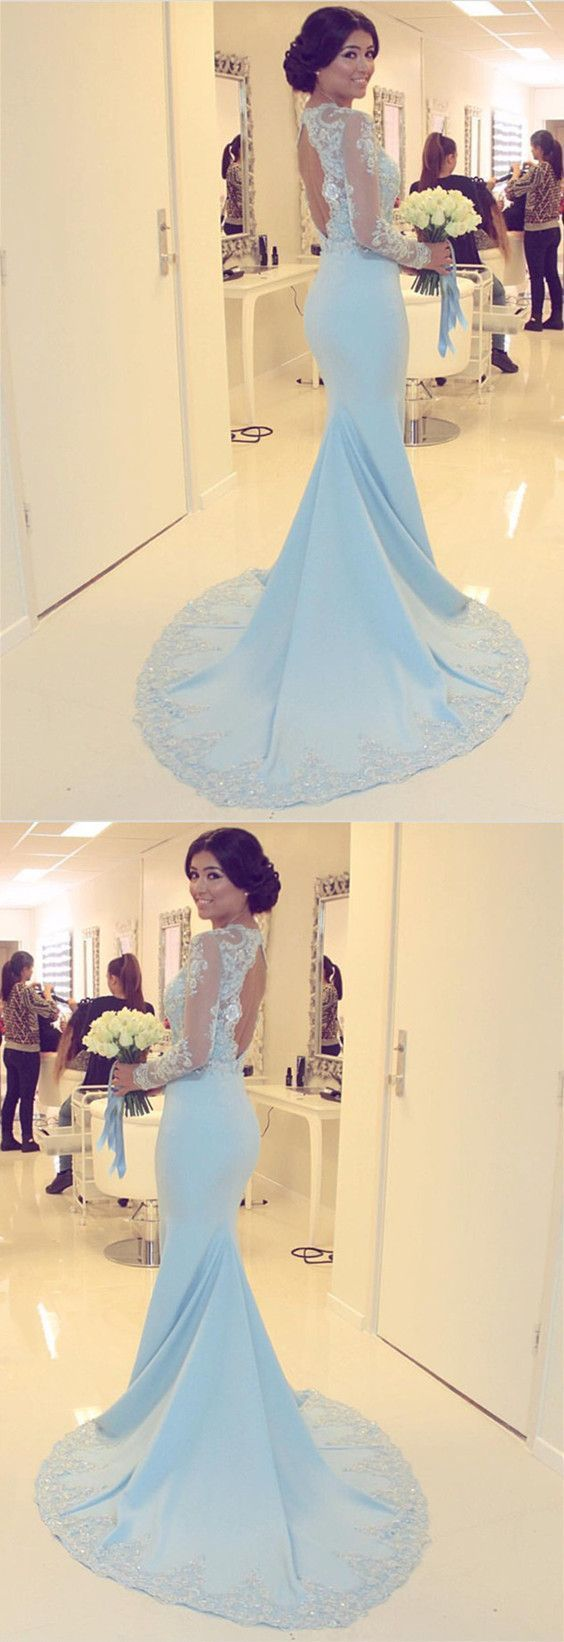 Sexy Lace Mermaid Prom Dress, Appliques Long Sleeve Evening Dress, Formal Gown